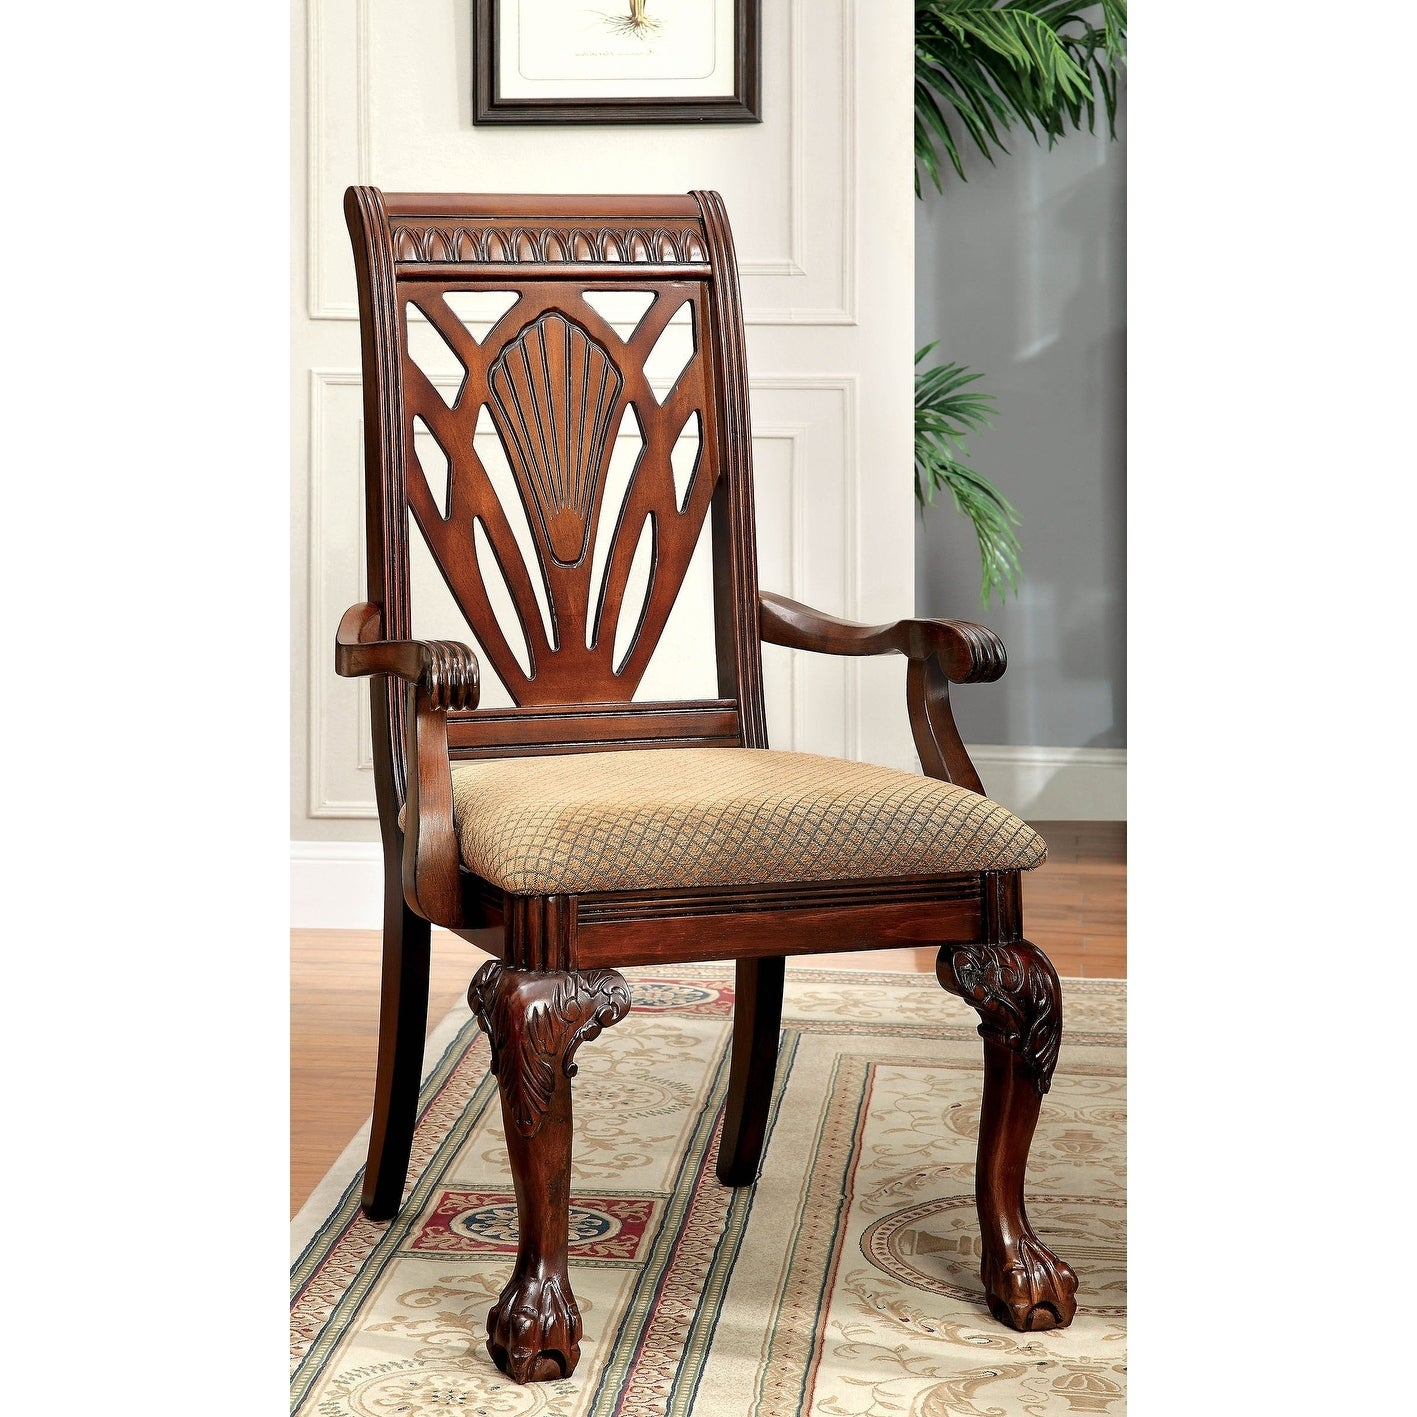 Shop williams import petersburg i cherry upholstered arm chairs set of 2 free shipping today overstock com 25720885